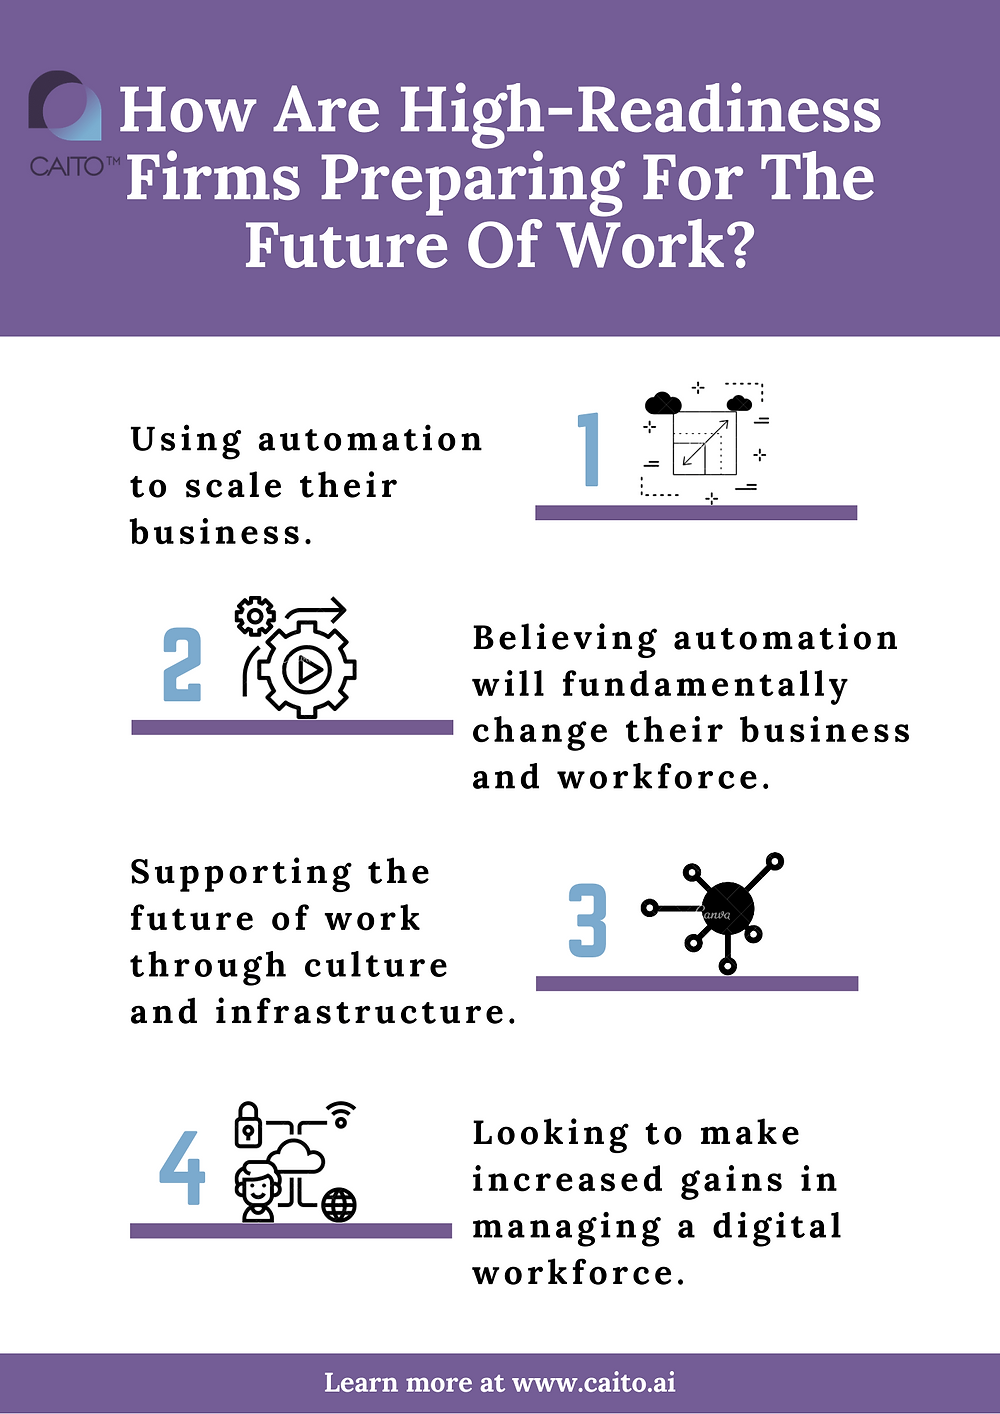 All firms need to start transforming their organisational structure and #culturenow to be adequately prepared for the impact of automation on the #workforce.  CAITO leverages CAI technologies to propose solutions and help organisations in #automation and #scalability and gain AI-powered, data-informed business outcomes.